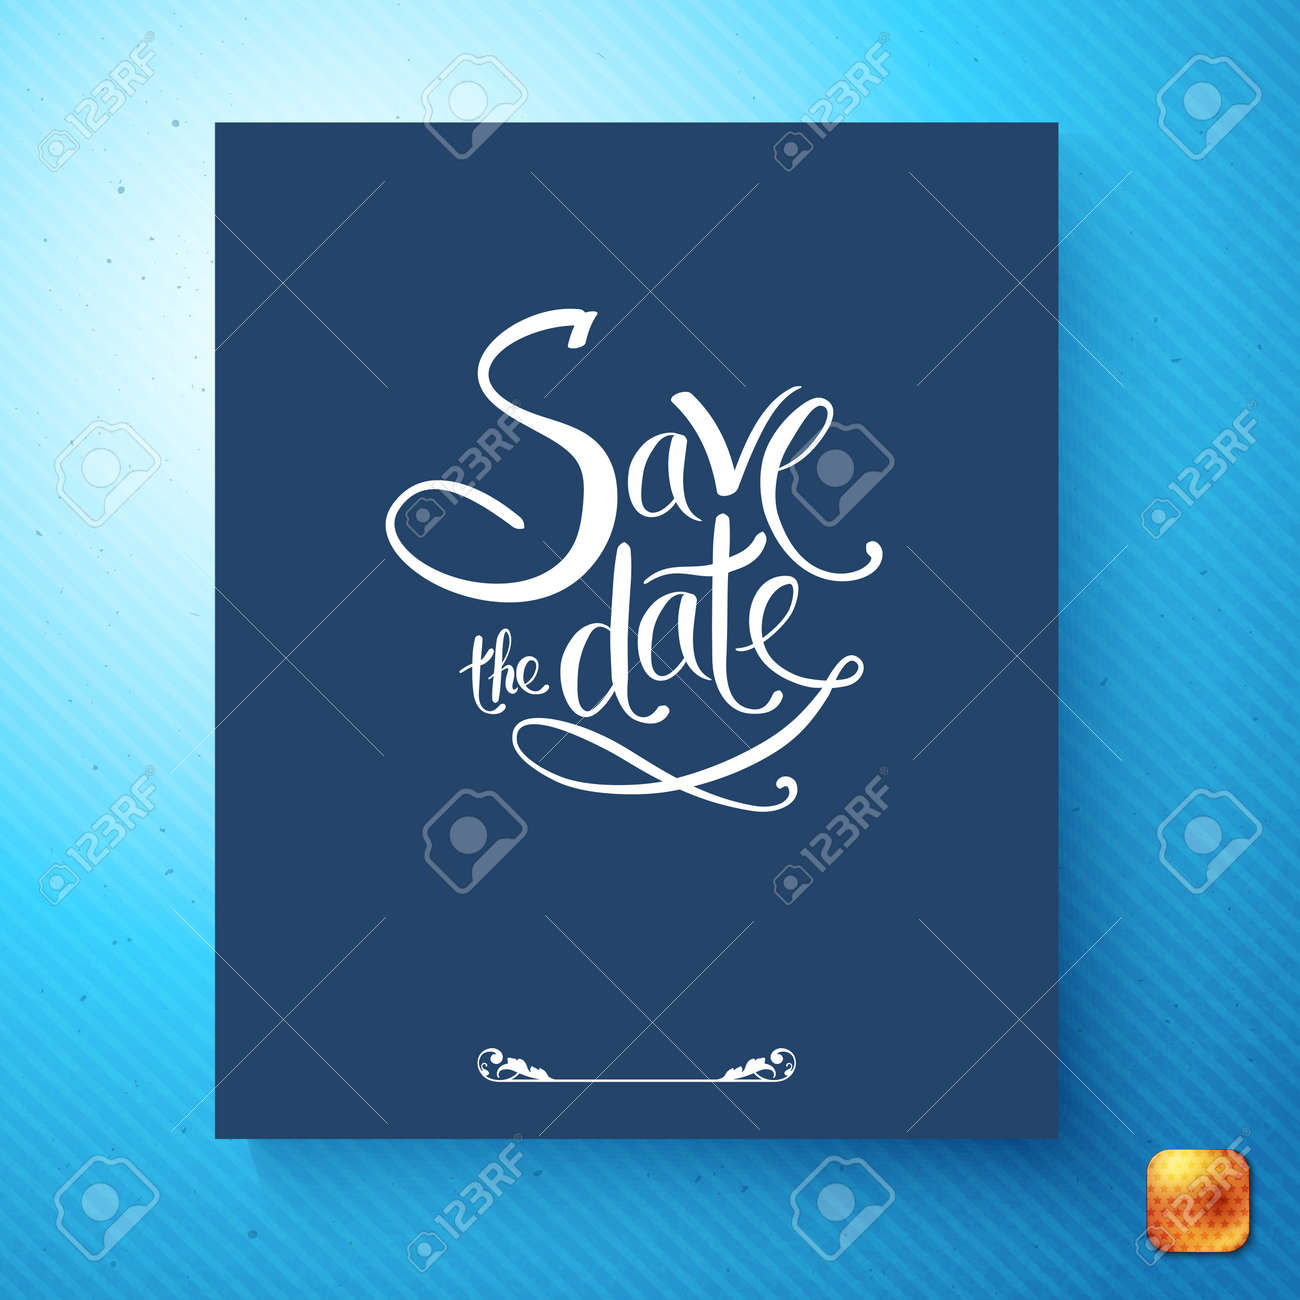 Simple Stylish Save The Date Wedding Invitation Card Design With